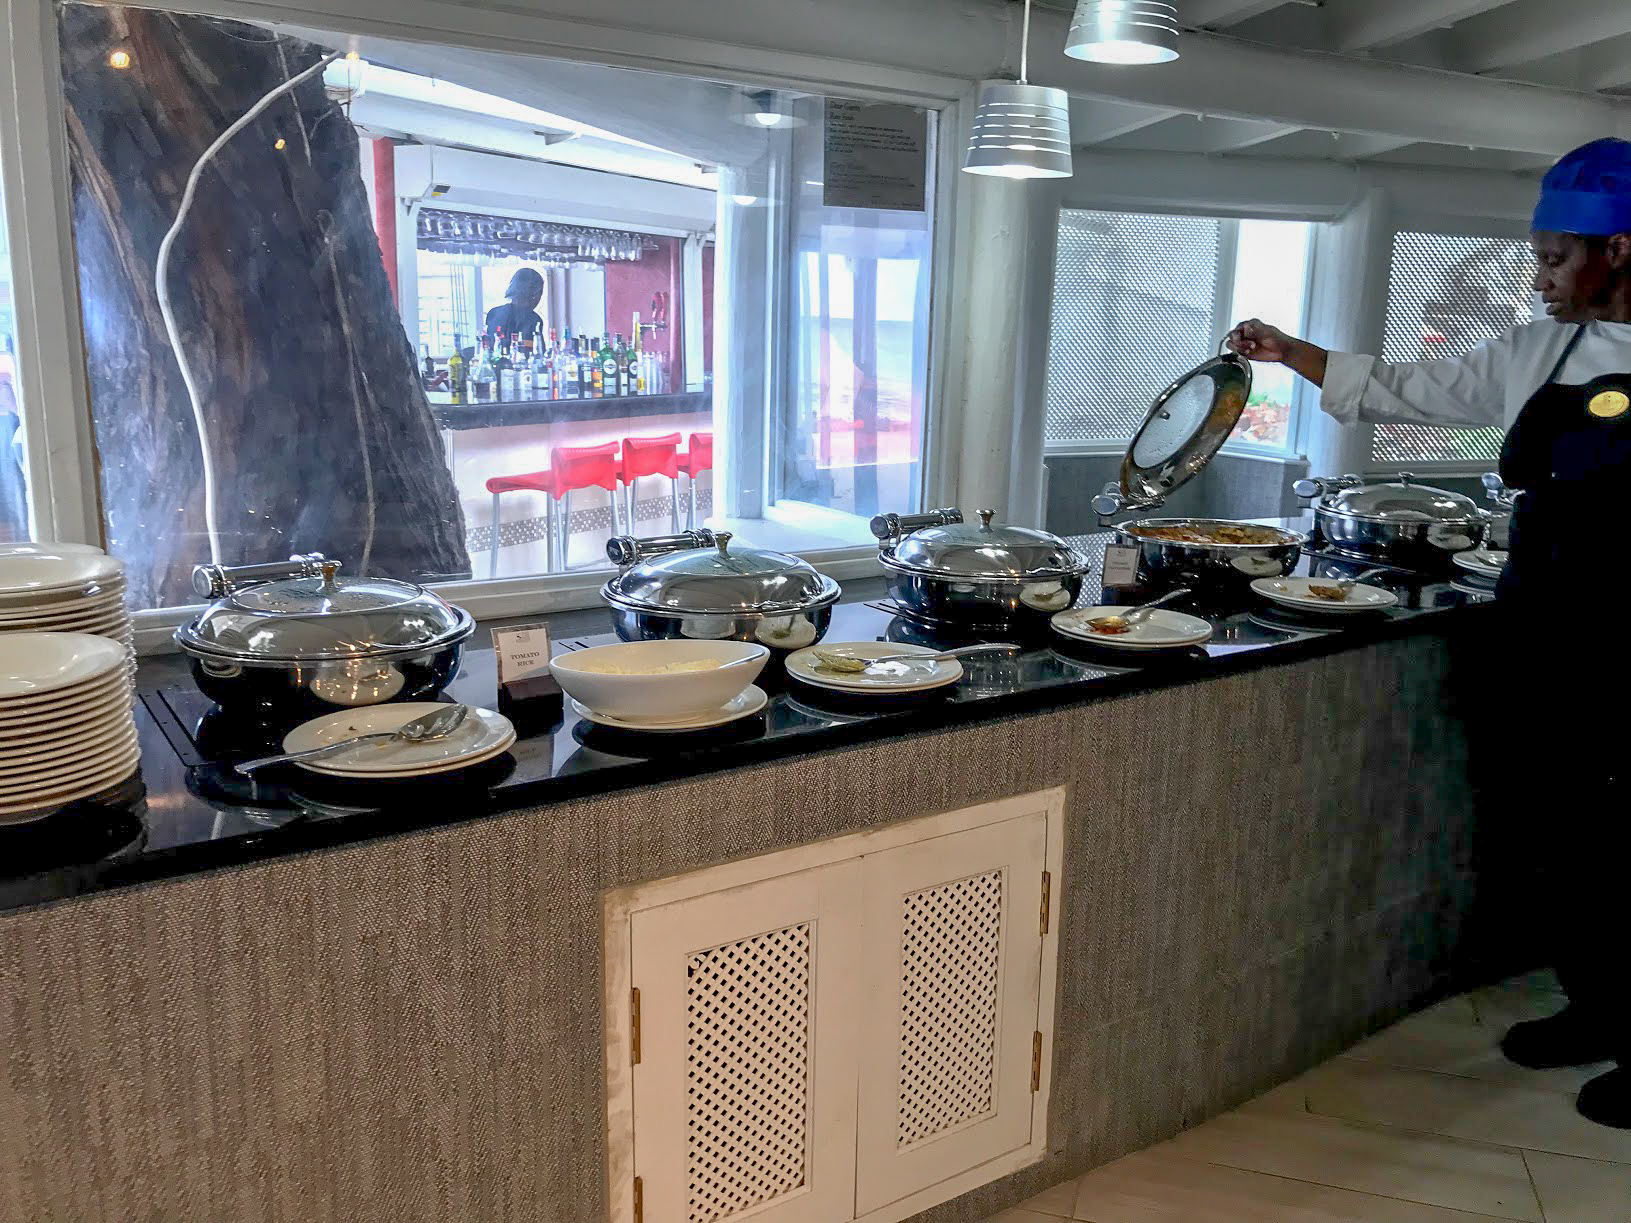 Hot buffet dishes with their lids open and shut